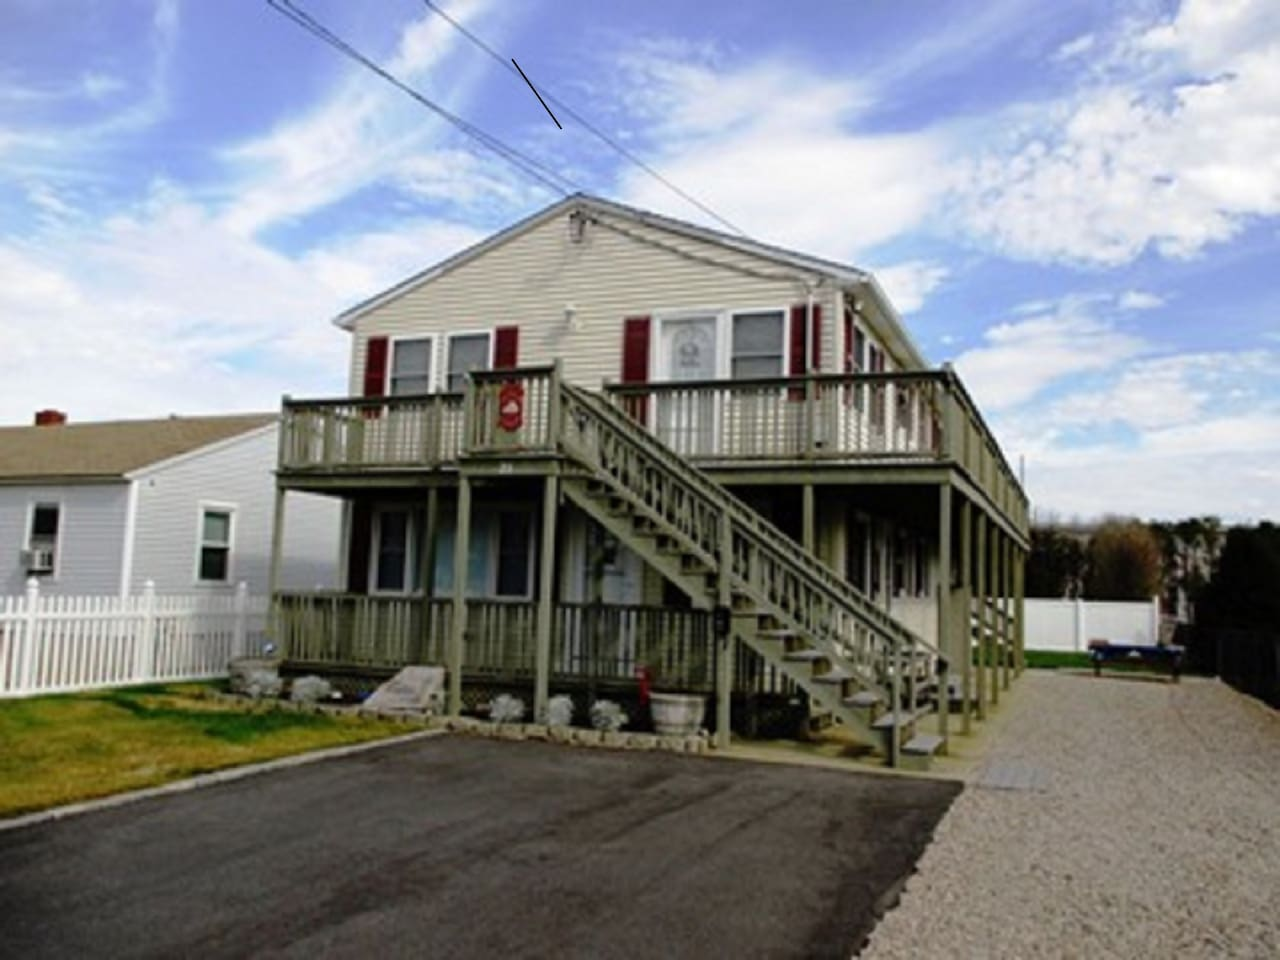 Beach cottage - one block to beach - top floor is Pelican Perch! 3 bedrooms and great views!